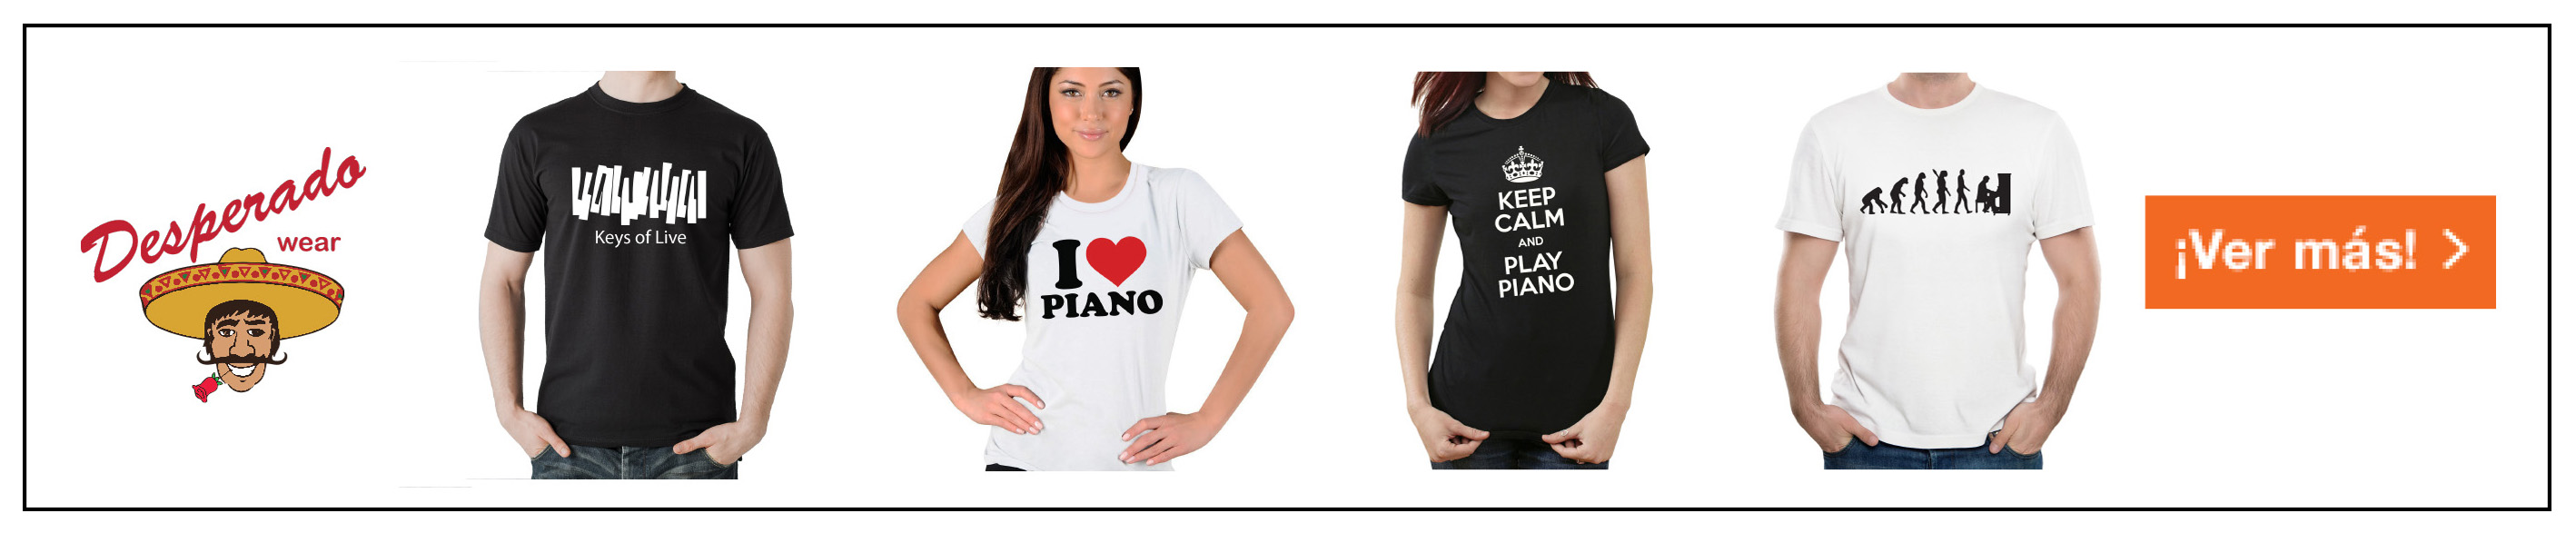 Desperado Wear camisetas de piano